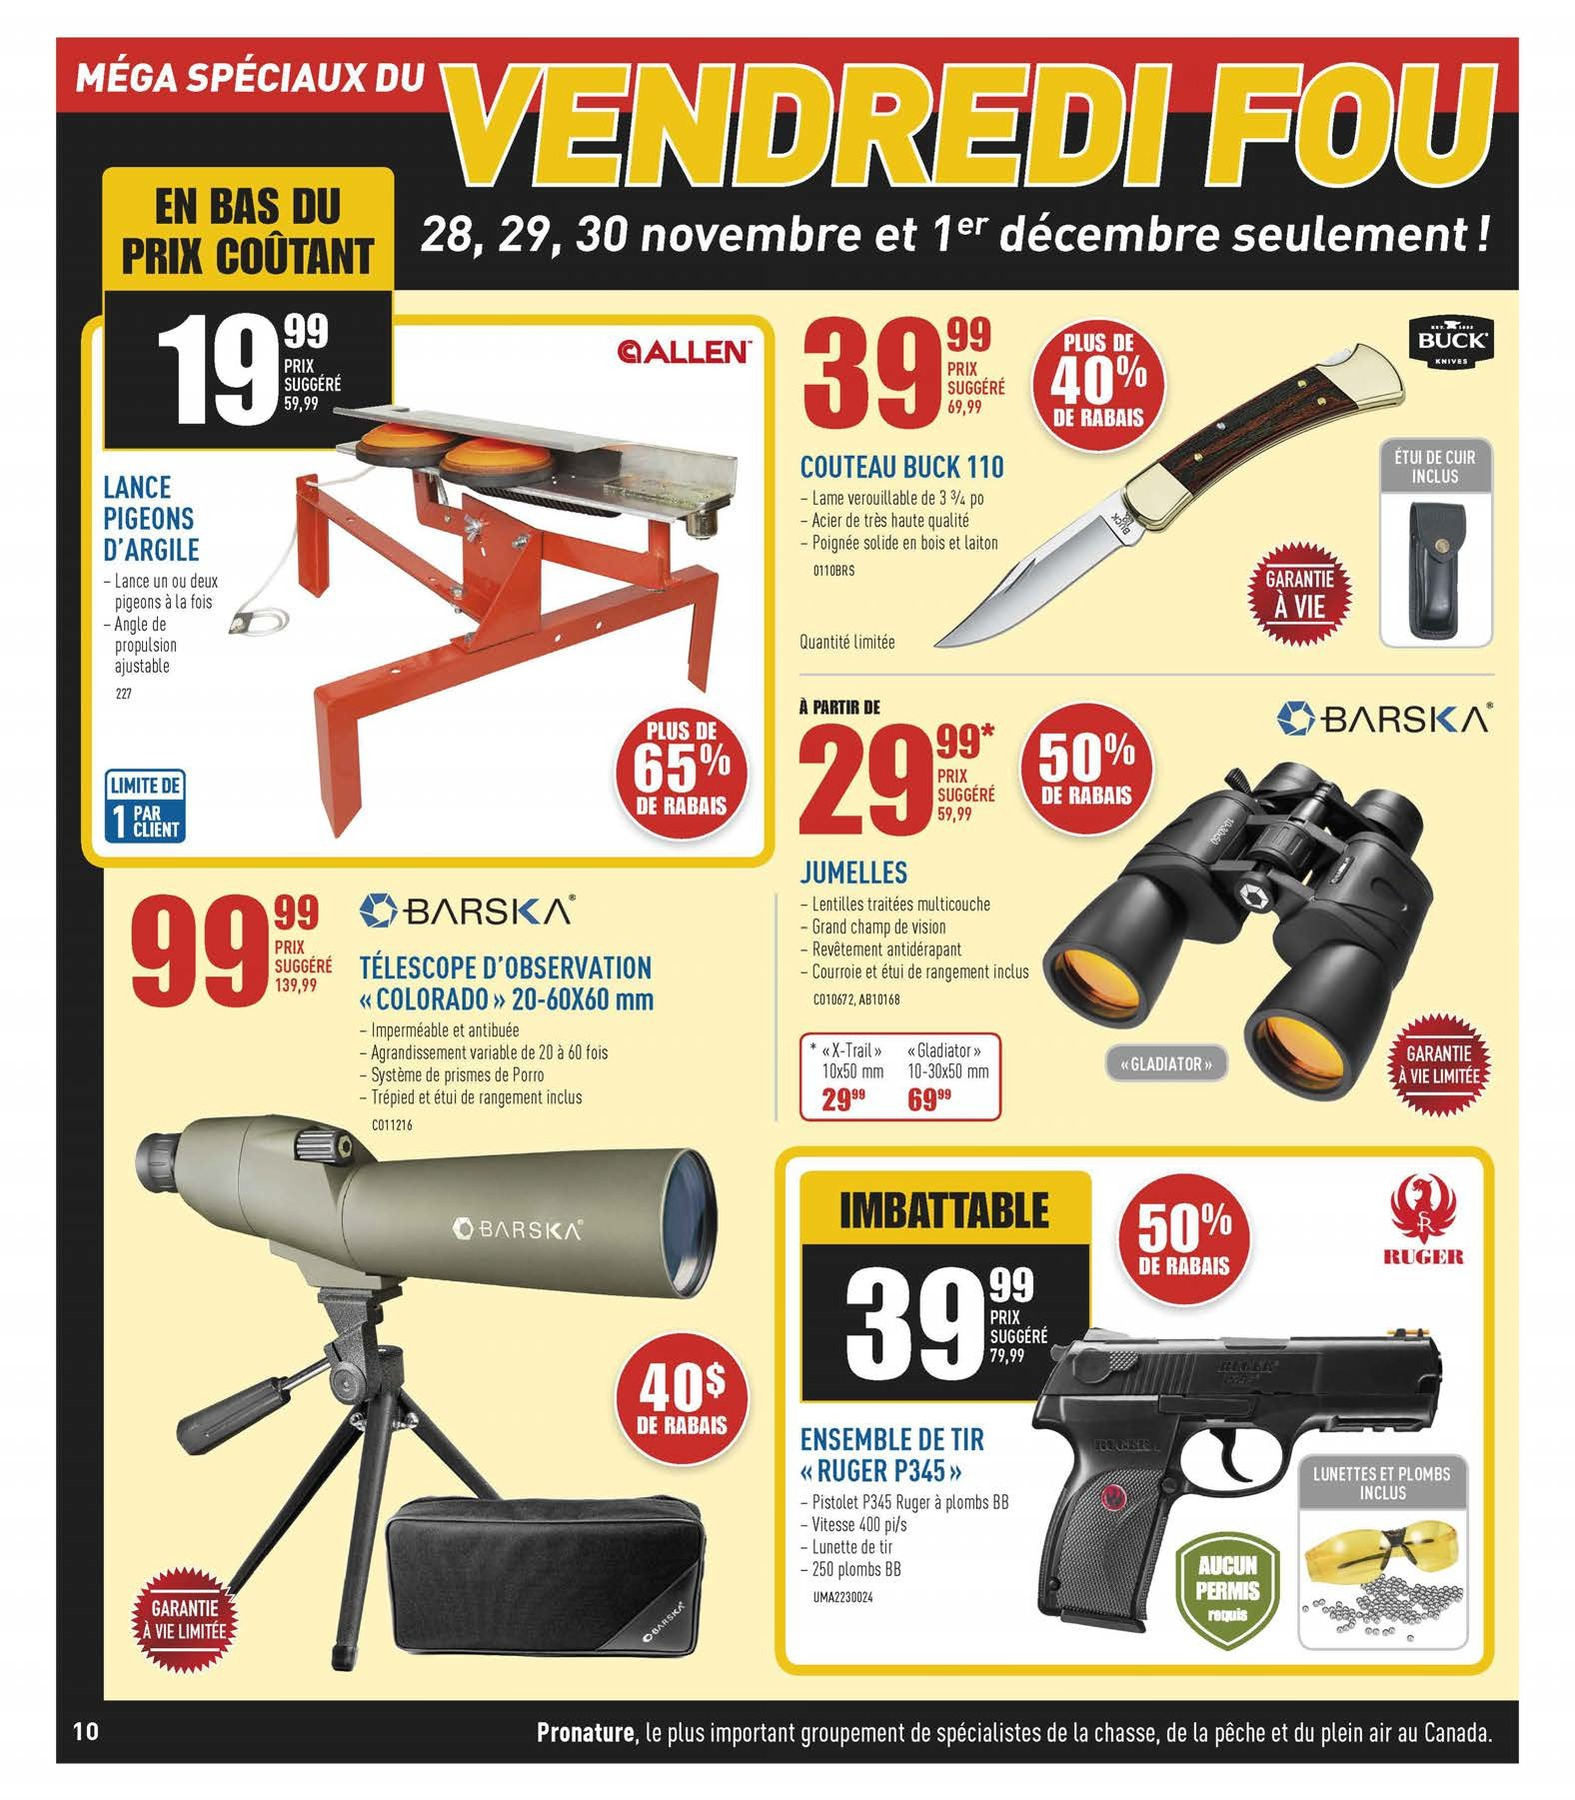 Flyer 191124 43 page 10 fr 1573848999